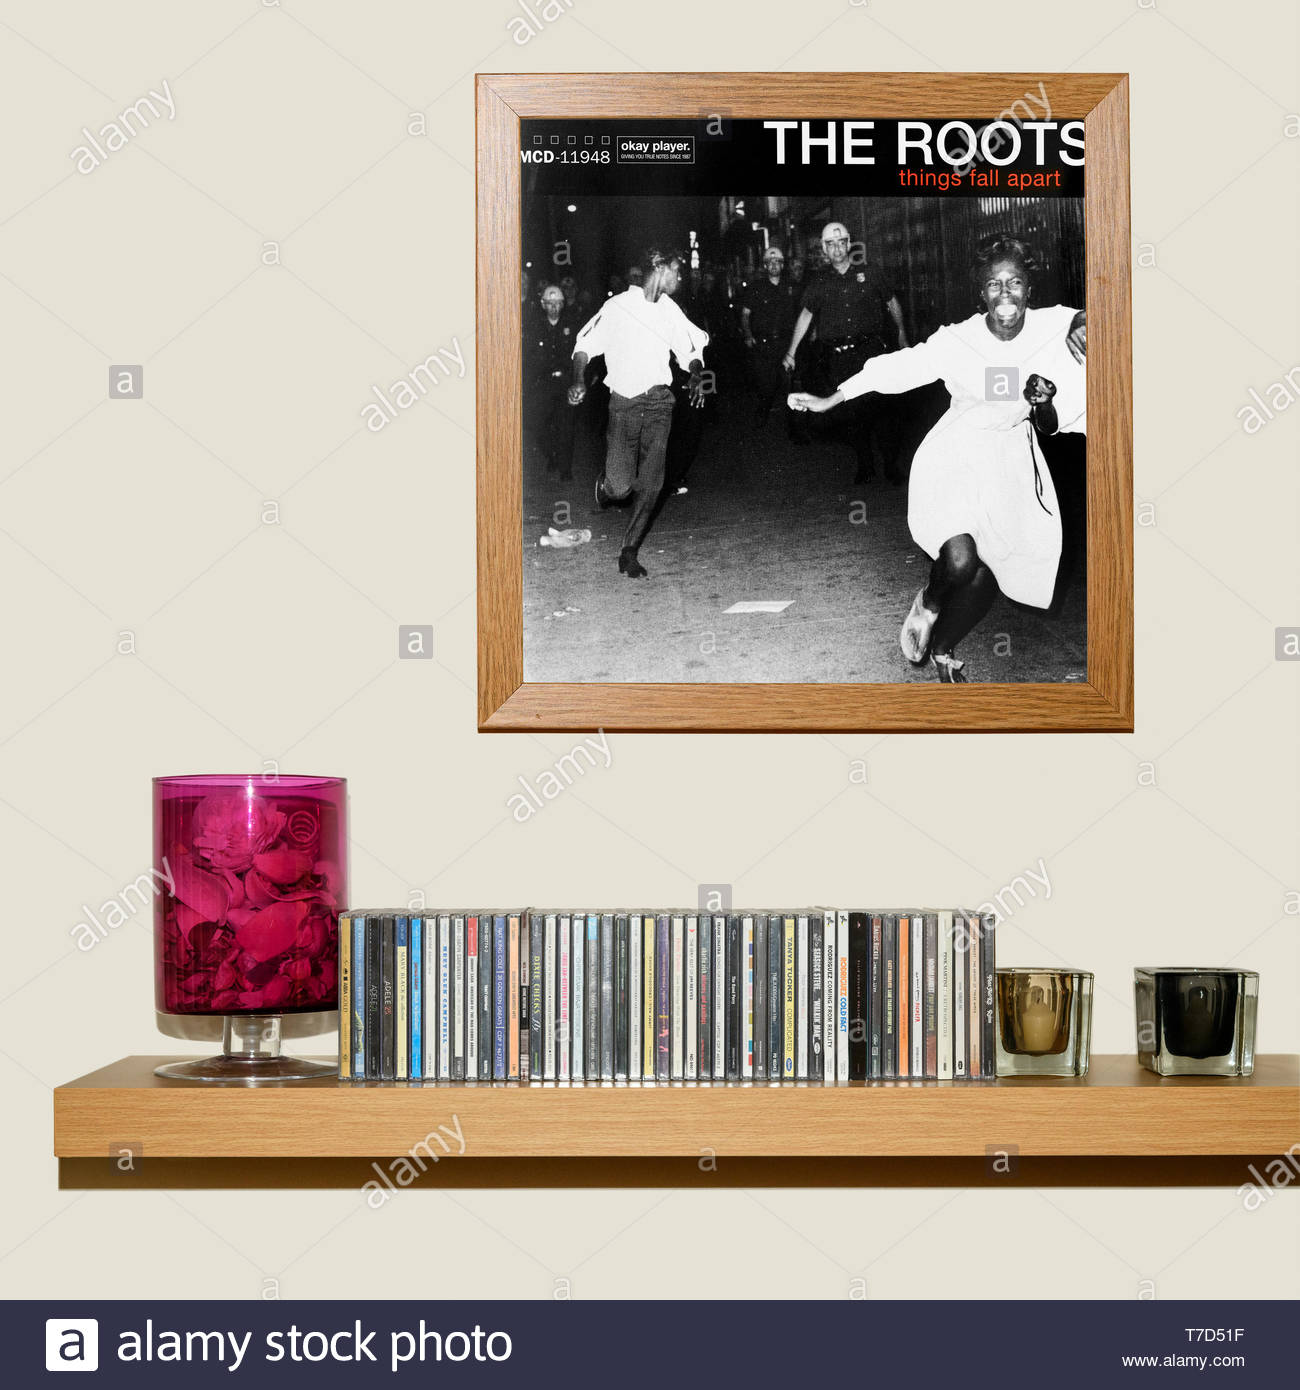 The Roots, Things Fall Apart album, CD Collection and framed Album cover, England Stock Photo